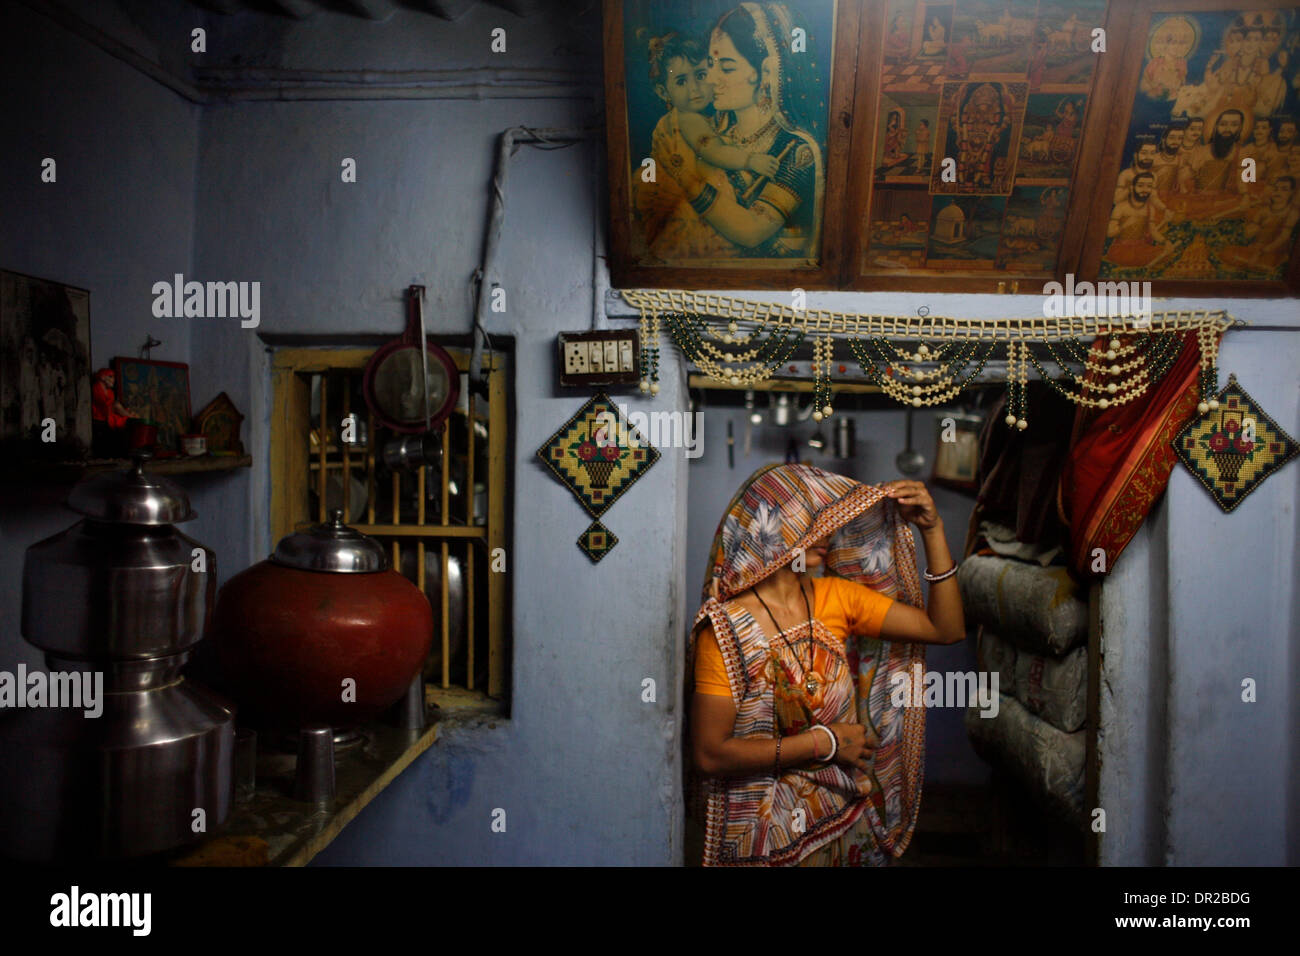 Jan. 12, 2009 - Amhedabad, India - CHANDRIKA DODIYA stands in the doorway of her kitchen where she lives with her Stock Photo